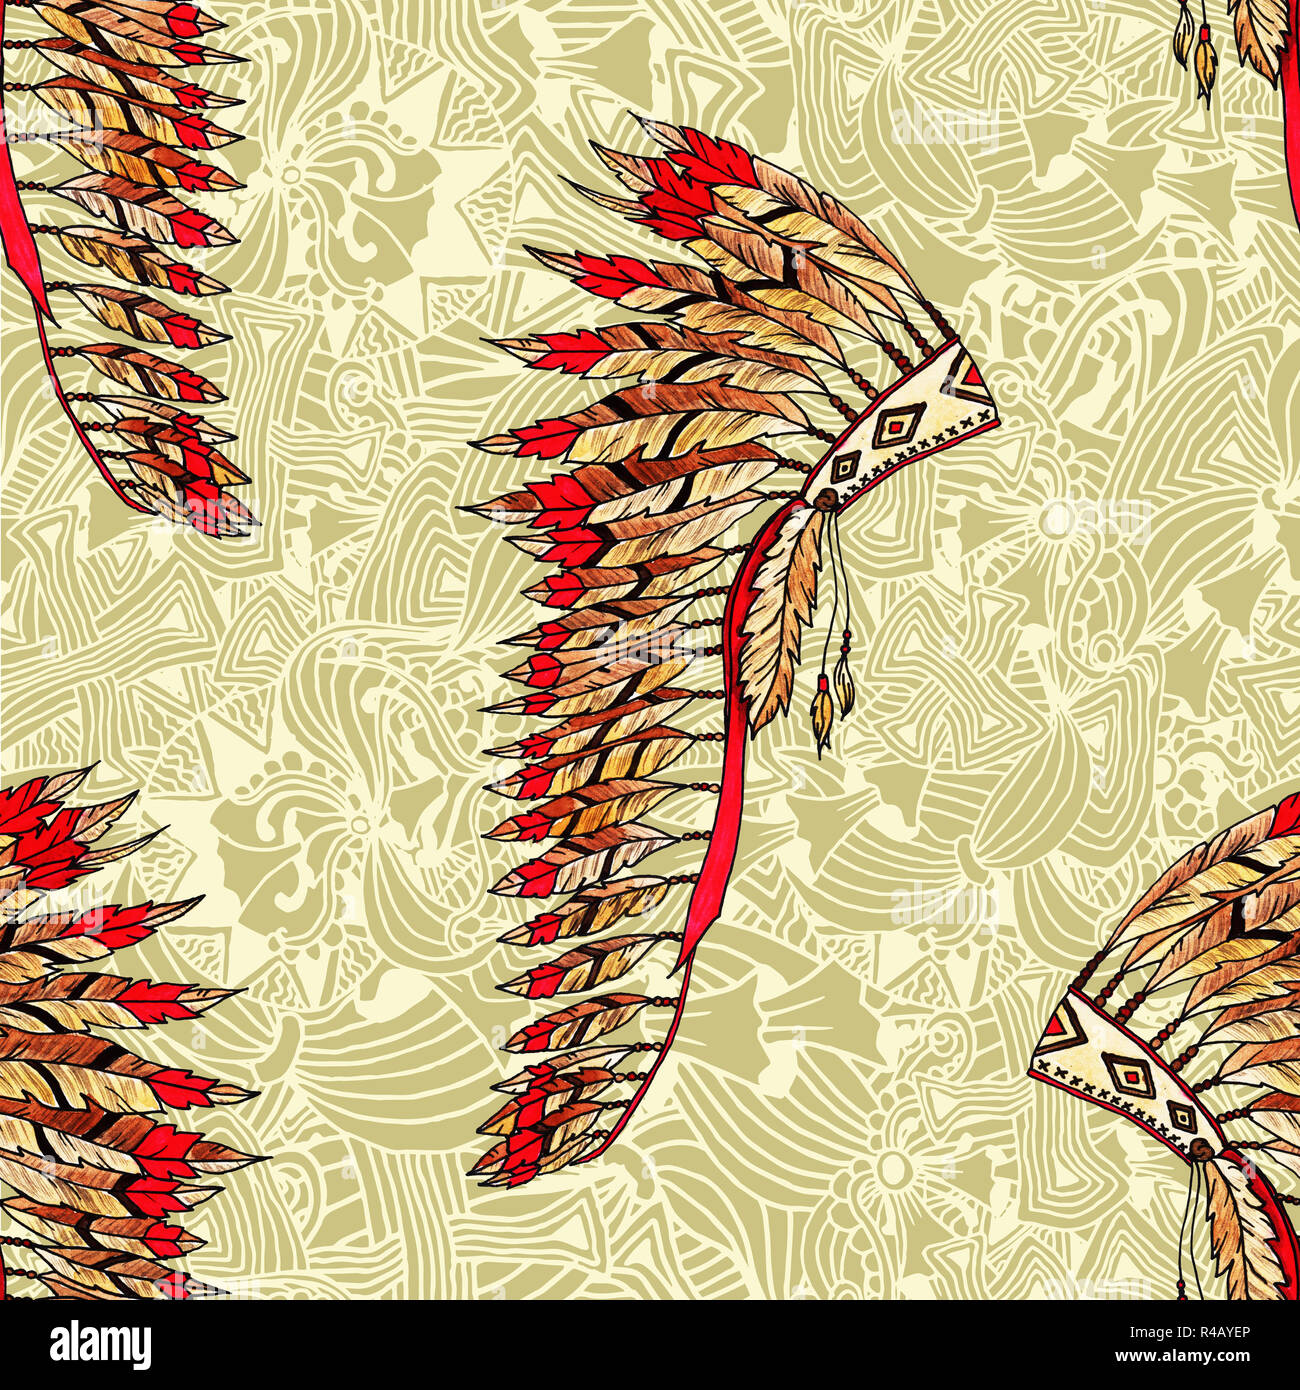 Feather hat seamless pattern. Indian headdress realistic drawing and ethnic ornaments. Native American painted feather warbonnet. Thanksgiving and Halloween costume item. - Stock Image